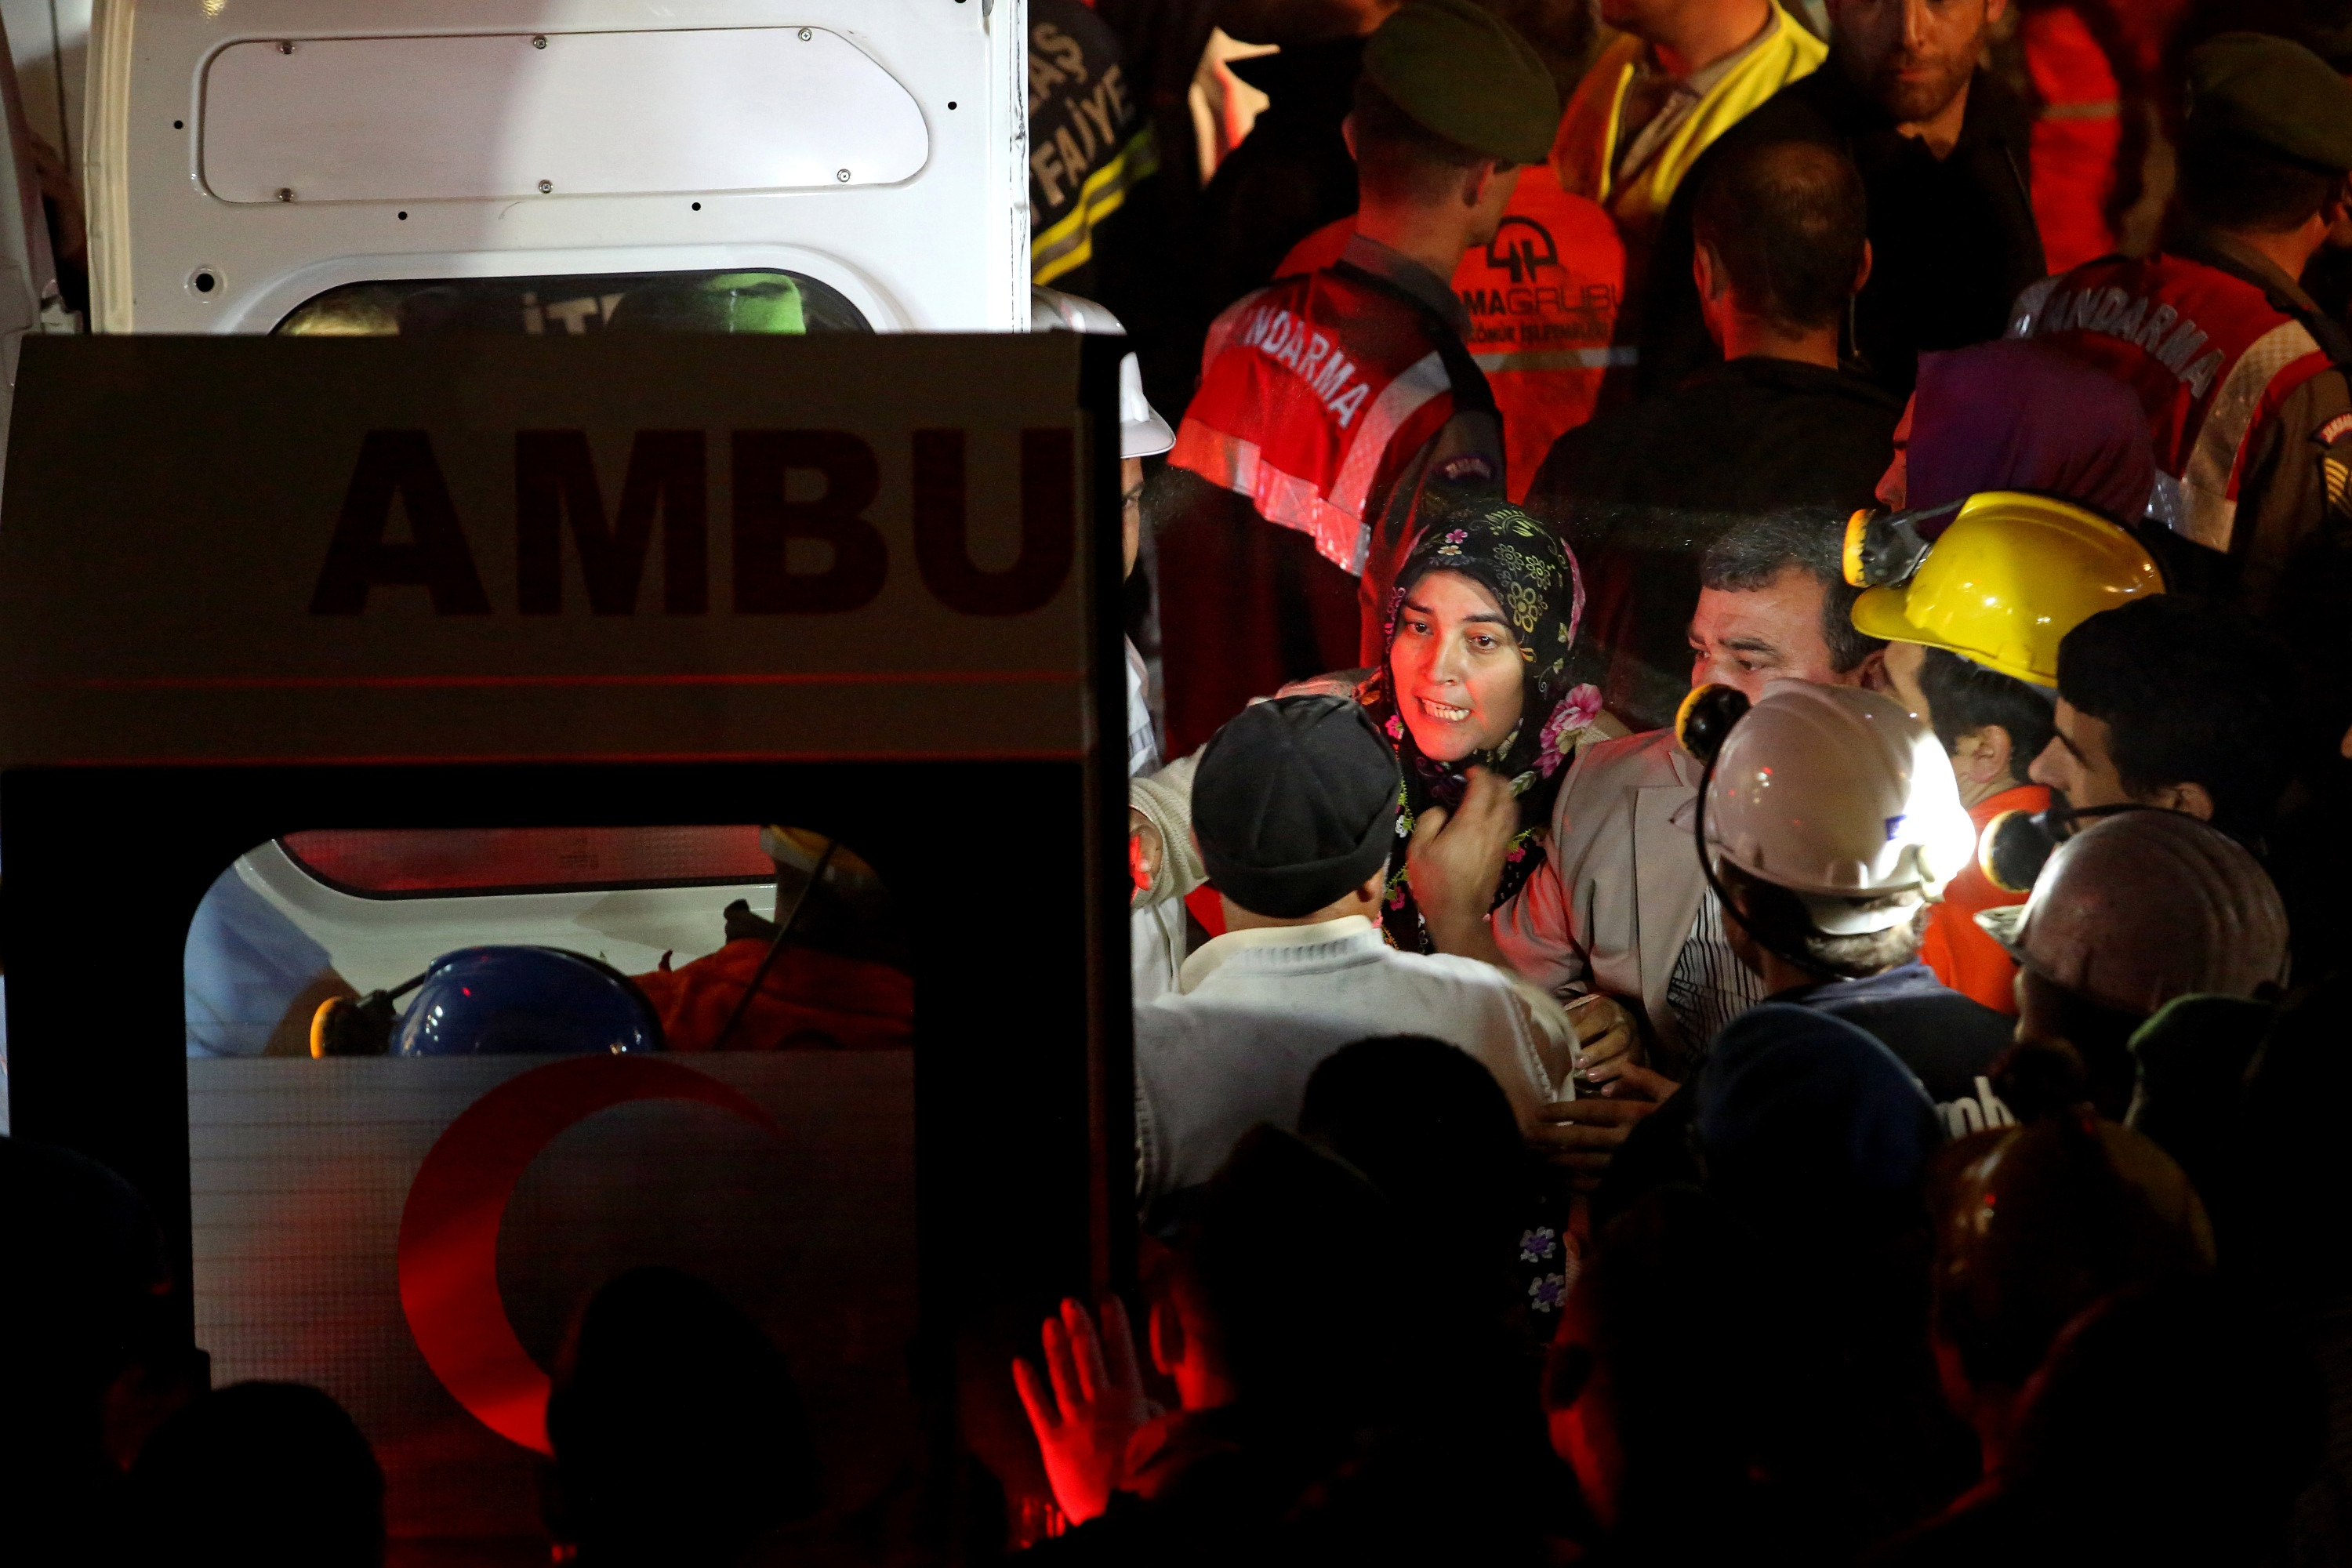 Relatives of miners who are trapped in a coal mine wait near an ambulance on May 14, 2014 in Soma, Turkey.